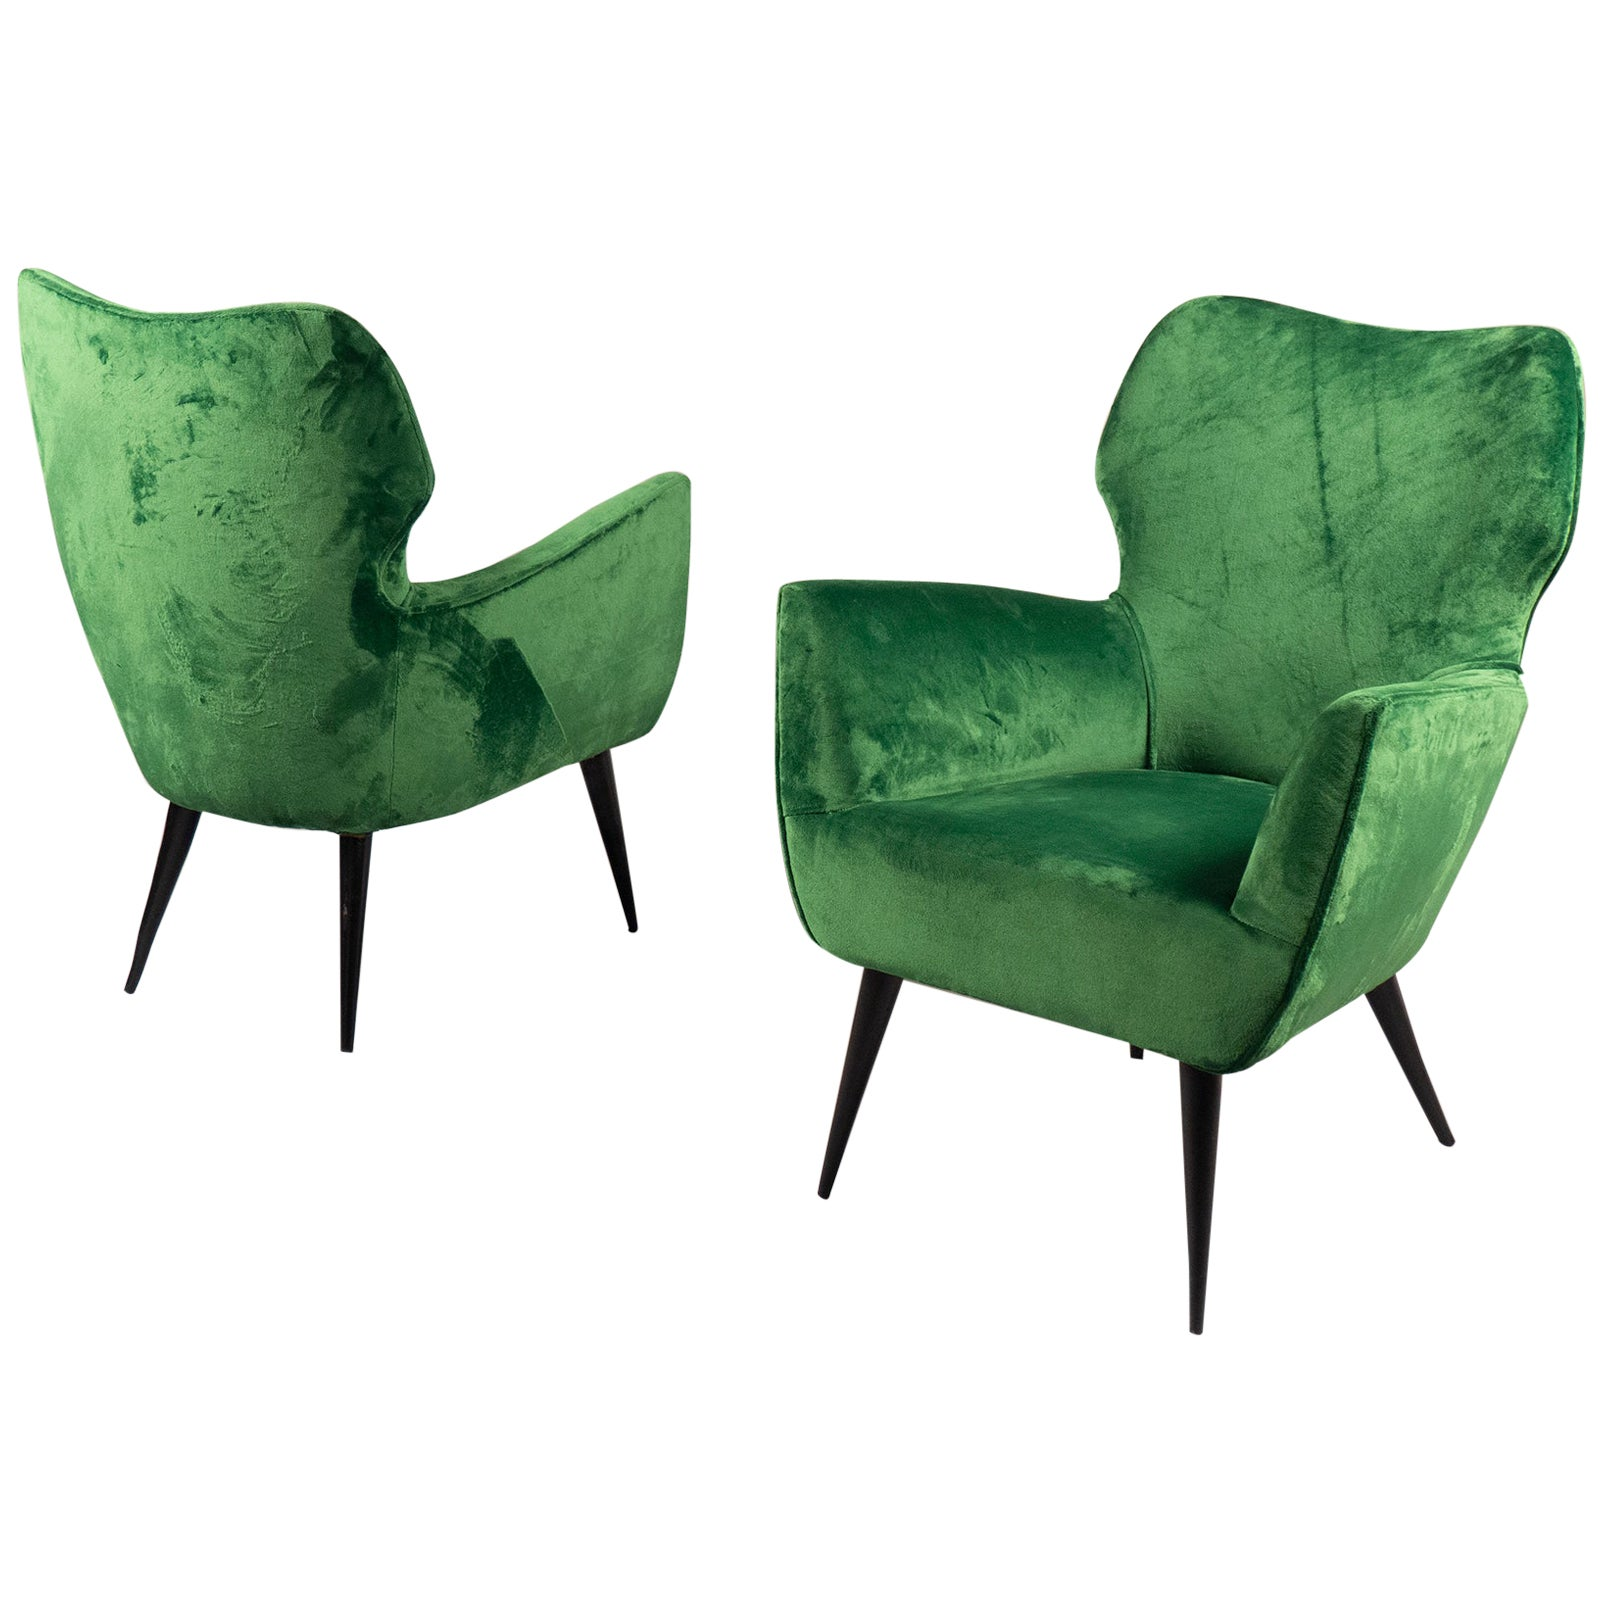 Pair of Armchairs, Italy, 1960s